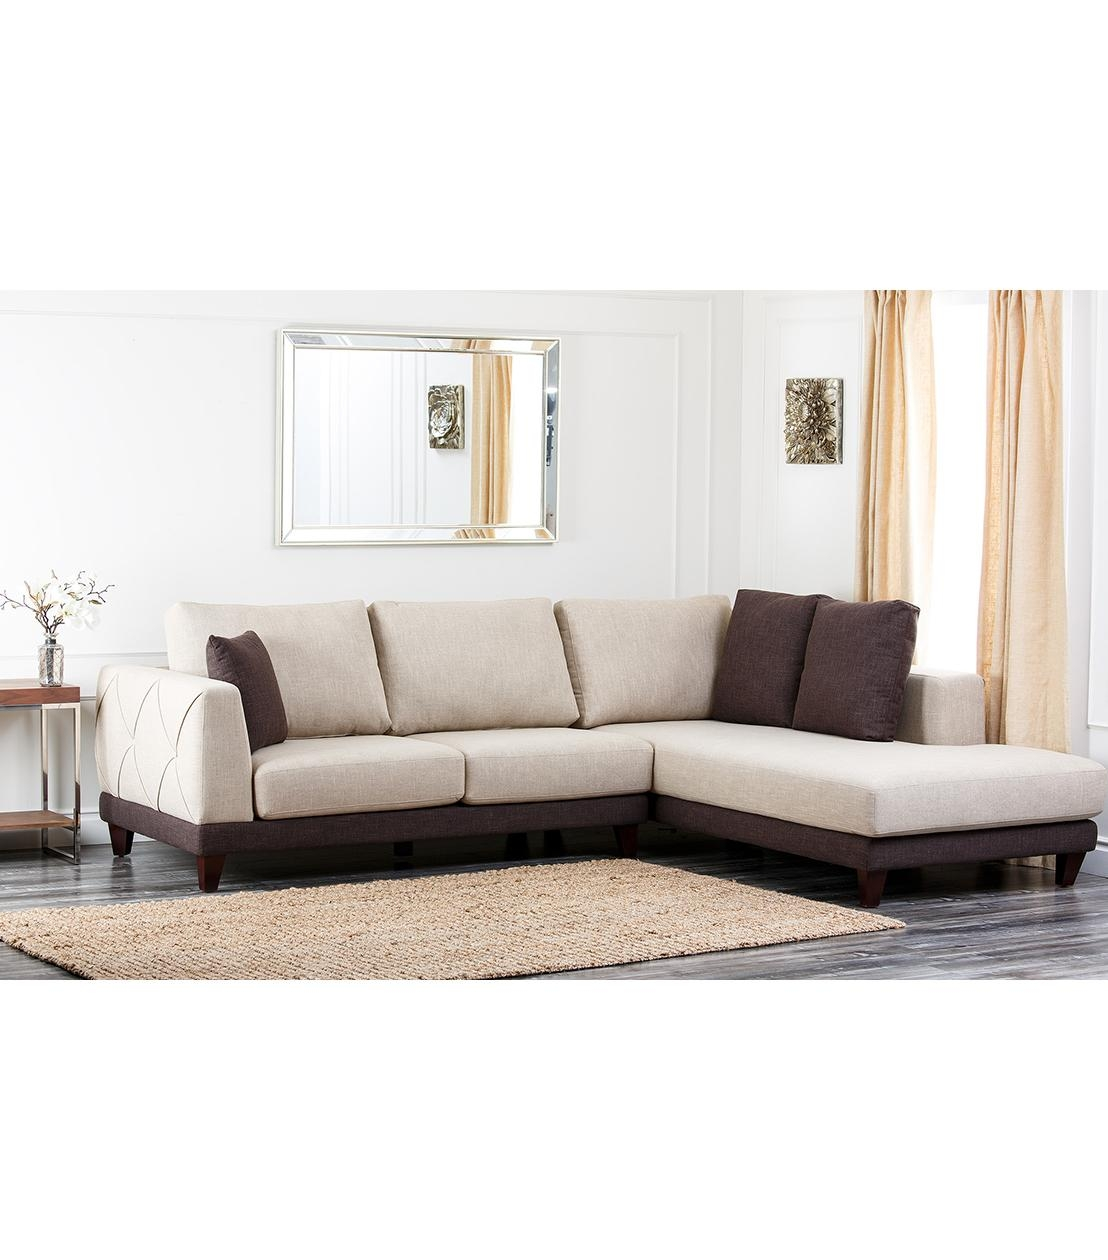 Sectionals Pertaining To Abbyson Living Sectional Sofas (Image 15 of 20)